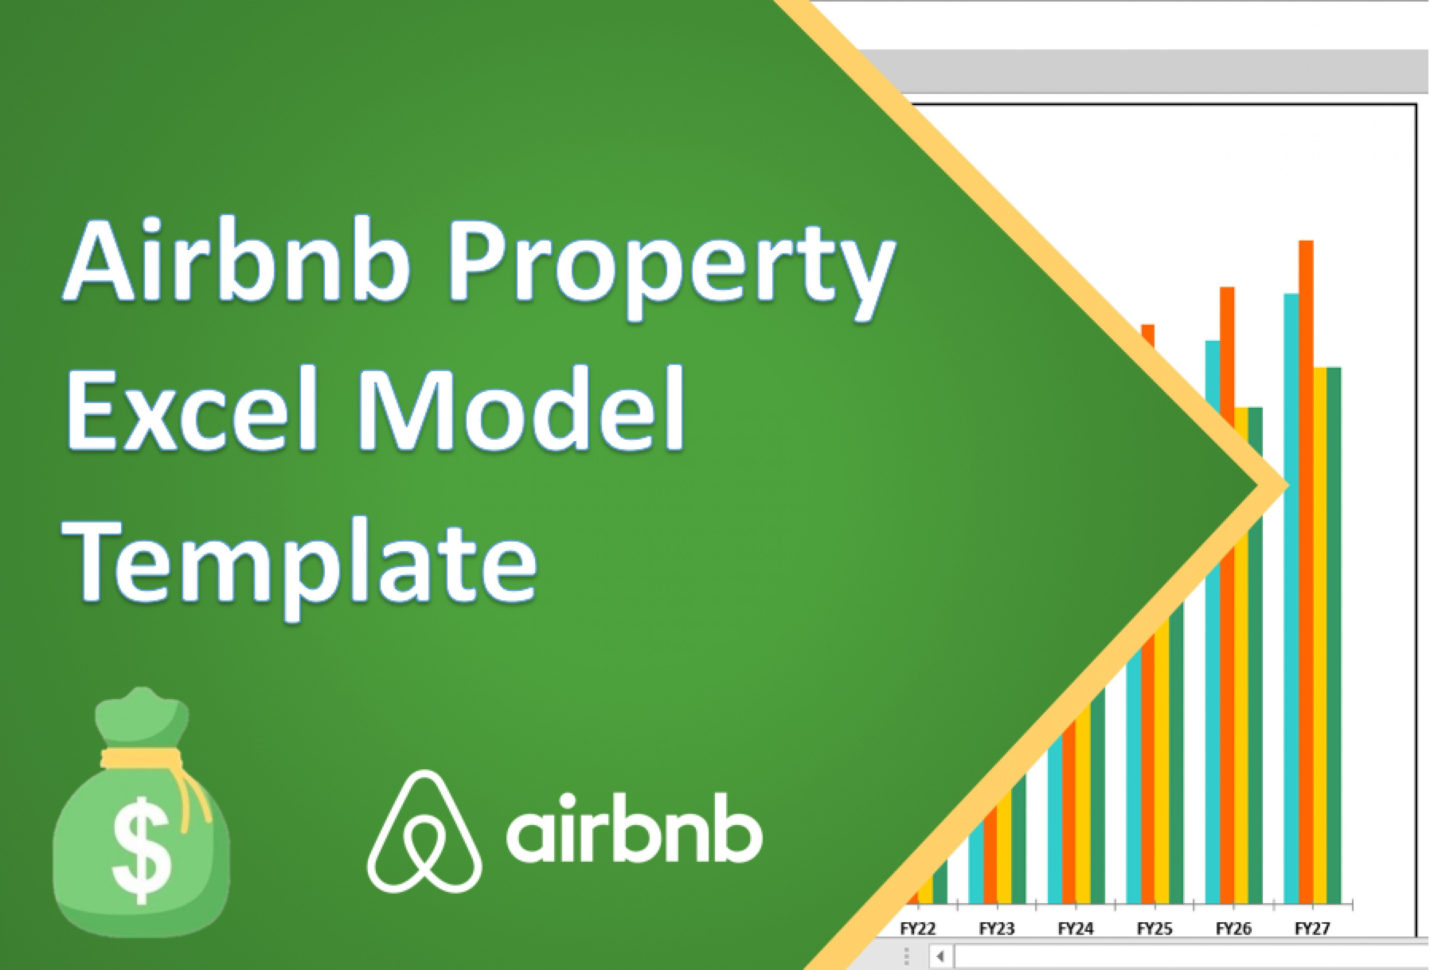 airbnb spreadsheet template  Airbnb Spreadsheet Template Regarding Airbnb Property Excel Model Template  Eloquens Airbnb Spreadsheet Template Printable Spreadsheet